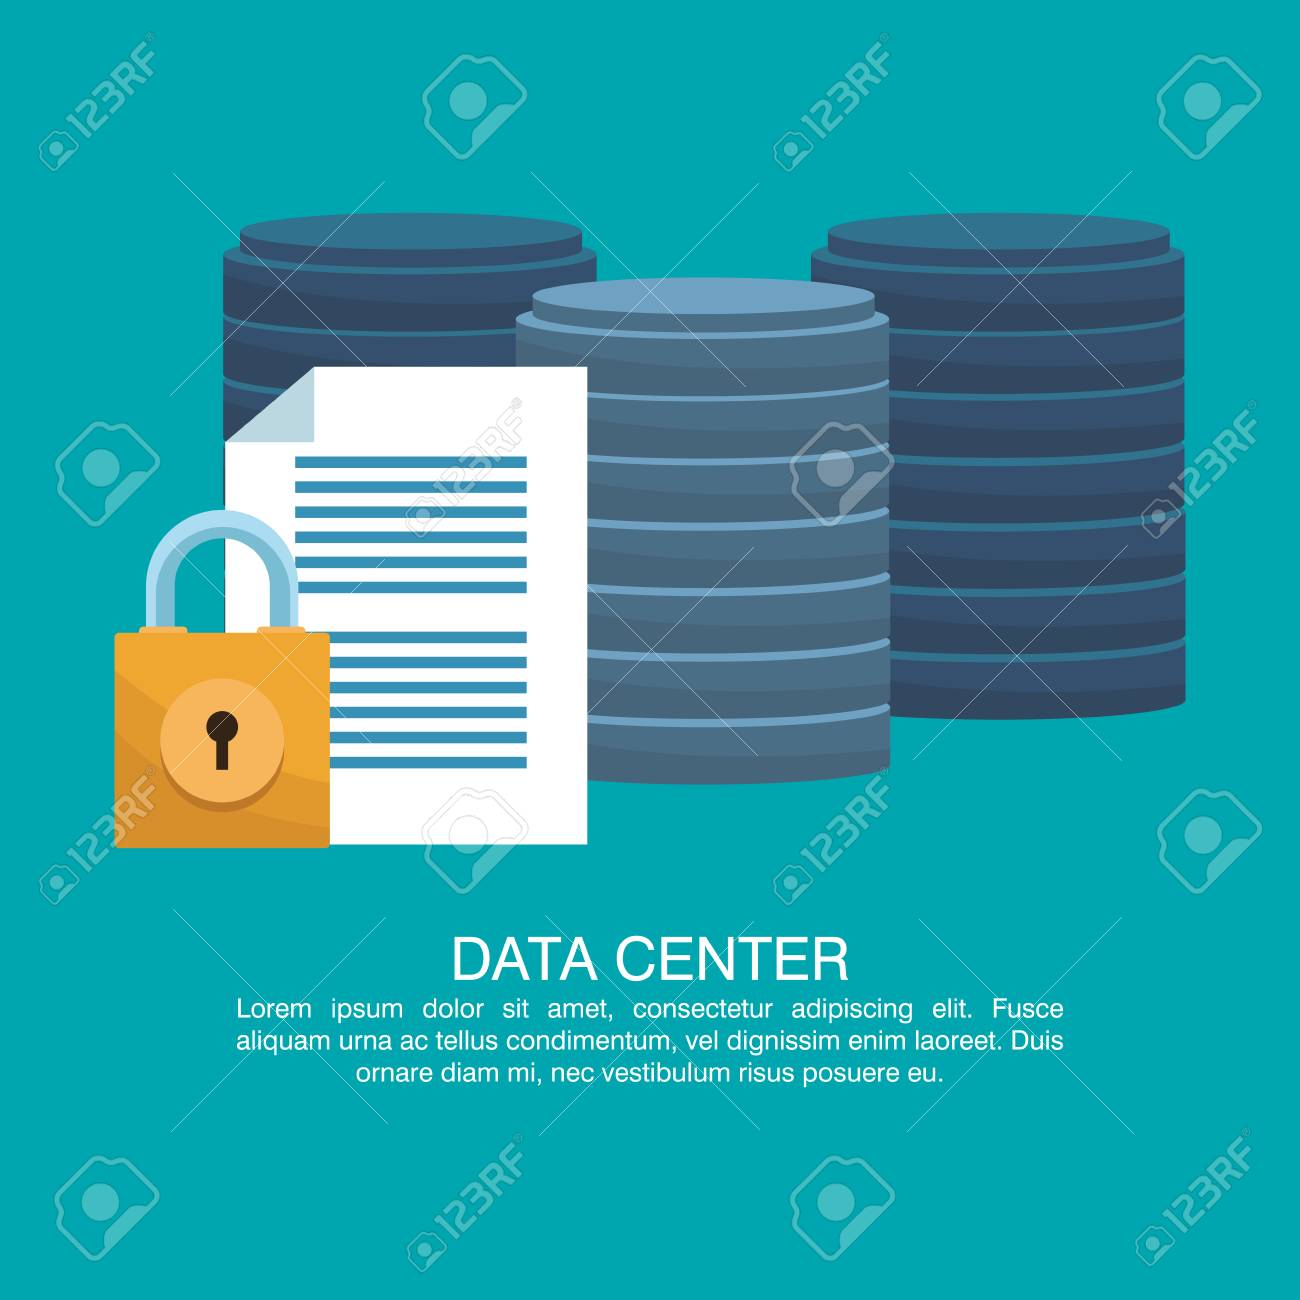 data center poster with informaton and elements cartoons vector